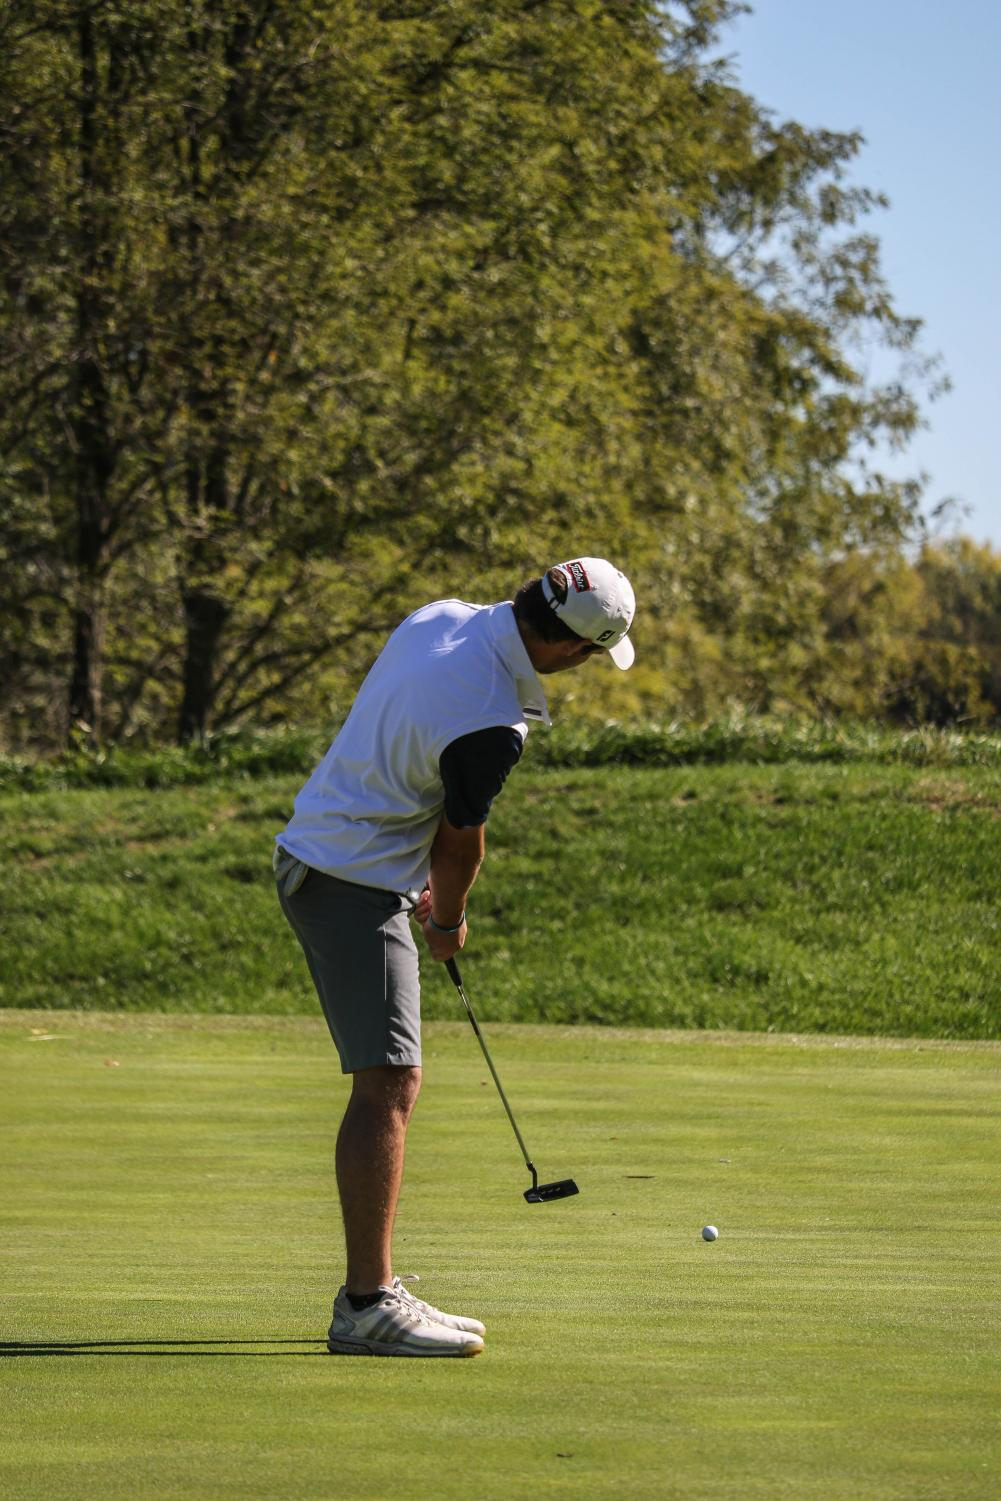 Junior+Payton+Ruder+watches+as+his+birdie+putt+heads+towards+the+hole.+Ruder+finished+the+highest+for+the+Wildcats%2C+taking+11th+with+a+overall+score+of+156+at+the+Baker+Invitational+on+Oct.+17-18.